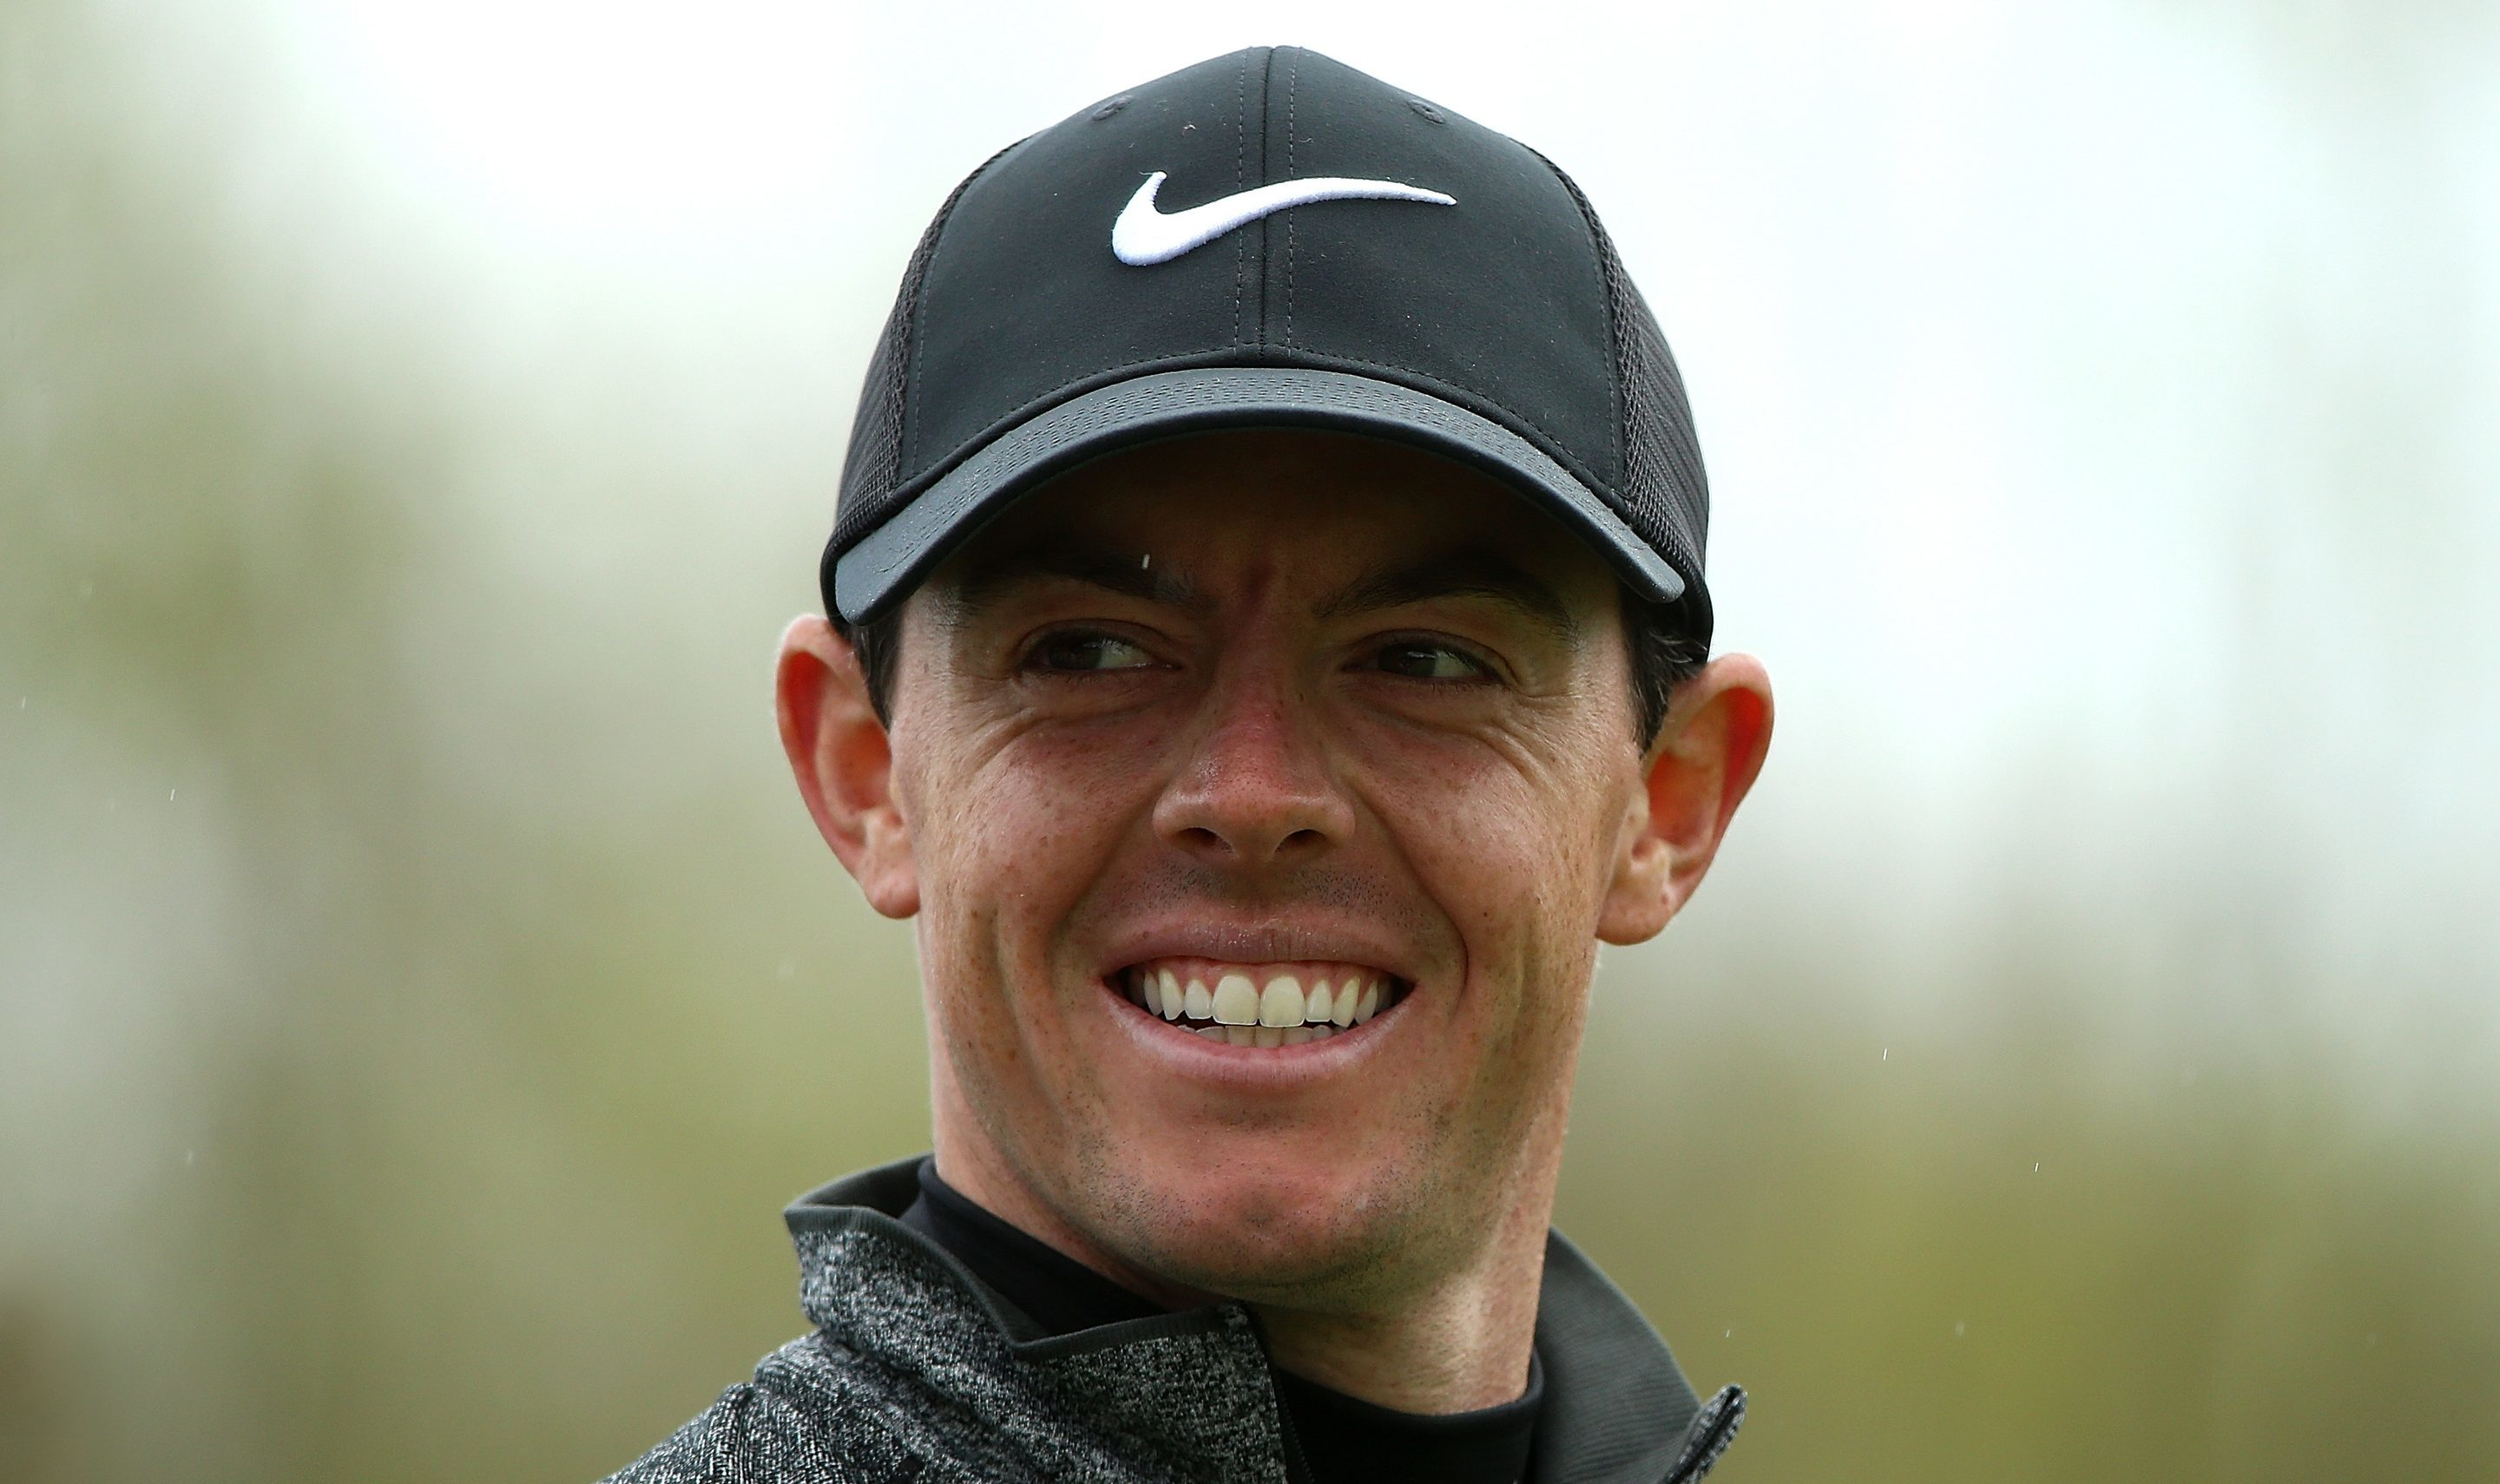 Rory McIlroy during a pre-tournament pro-am.